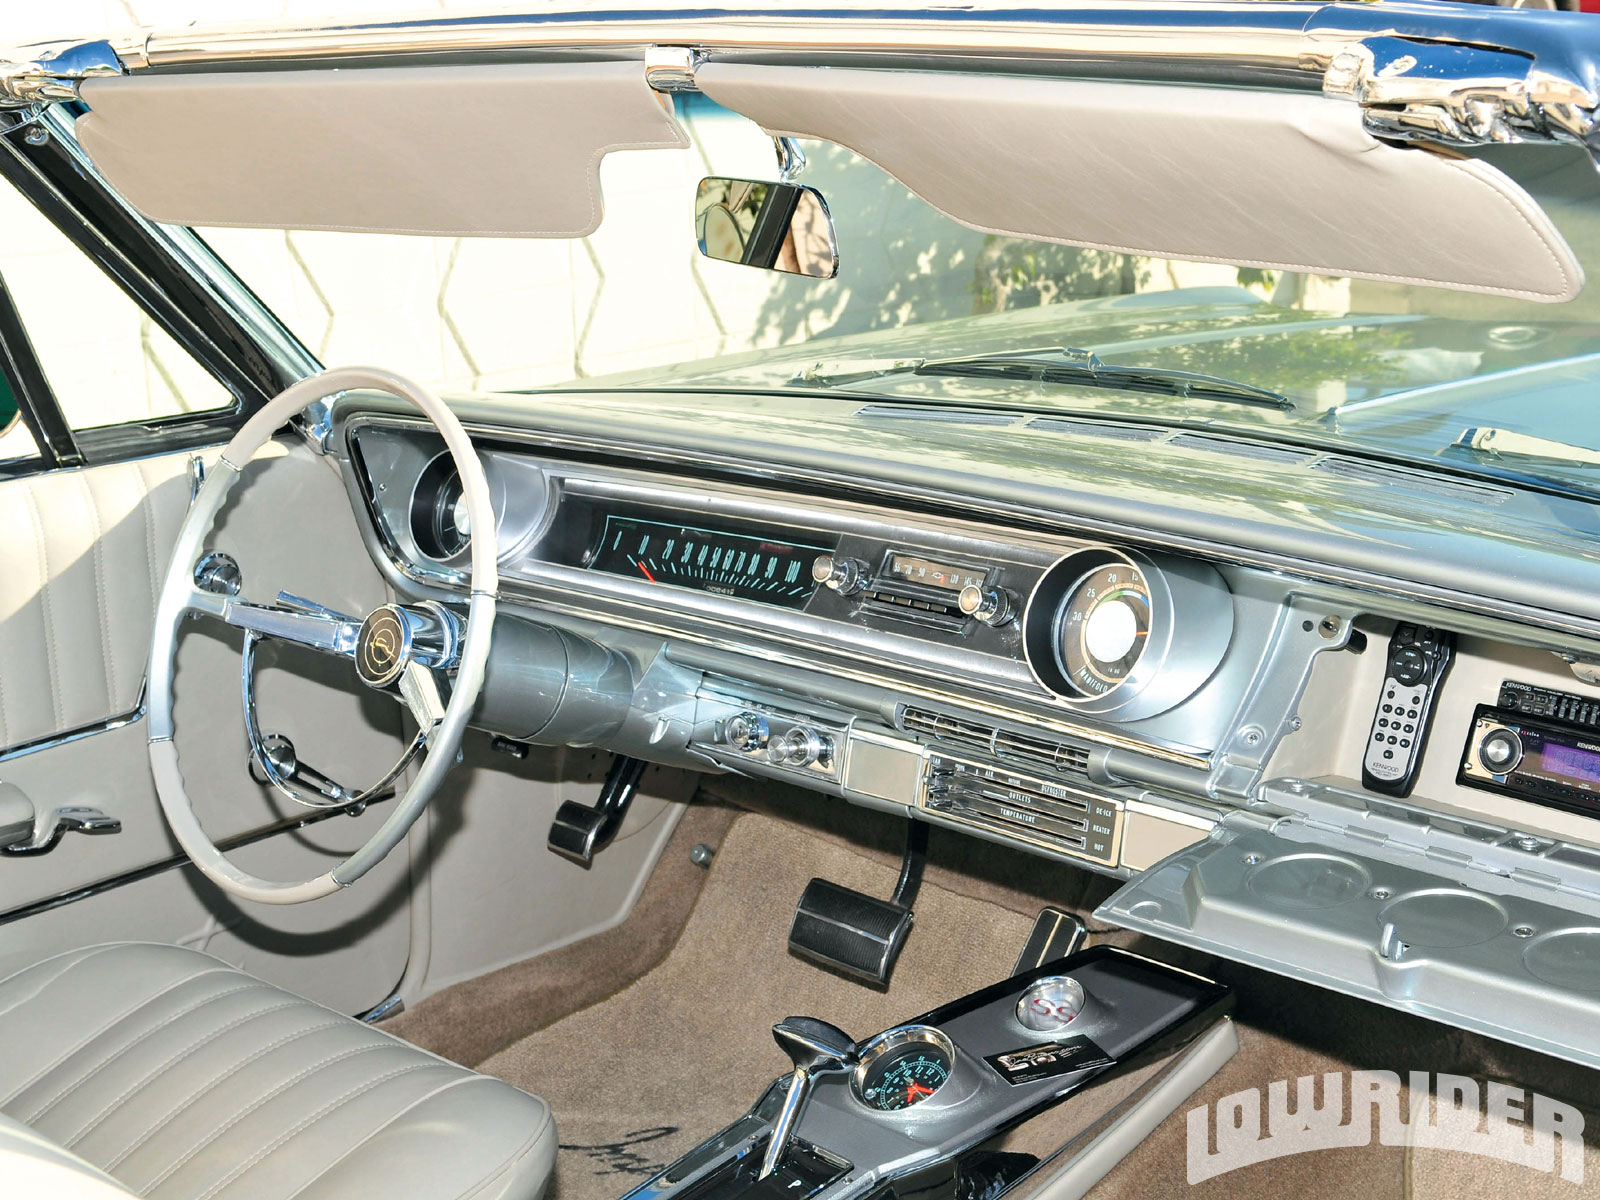 1965 Chevrolet Impala SS - Lowrider Magazine on 65 ford mustang wiring diagram, 65 vw bug wiring diagram, 1965 chevy truck wiring diagram, 06 impala starter wiring diagram, 65 ford ranchero wiring diagram, 65 buick skylark wiring diagram, 65 buick electra wiring diagram, 1965 chevy impala wiring diagram, 1961 impala wiring diagram, 65 pontiac gto wiring diagram, 65 lincoln continental wiring diagram, 65 ford thunderbird wiring diagram, 1964 chevy impala wiring diagram, 1962 chevy impala wiring diagram, 62 chevy impala wiring diagram, 65 ford galaxie wiring diagram, 63 chevy impala wiring diagram, 72 chevy impala wiring diagram, 66 chevy impala wiring diagram, 1965 chevy nova wiring diagram,